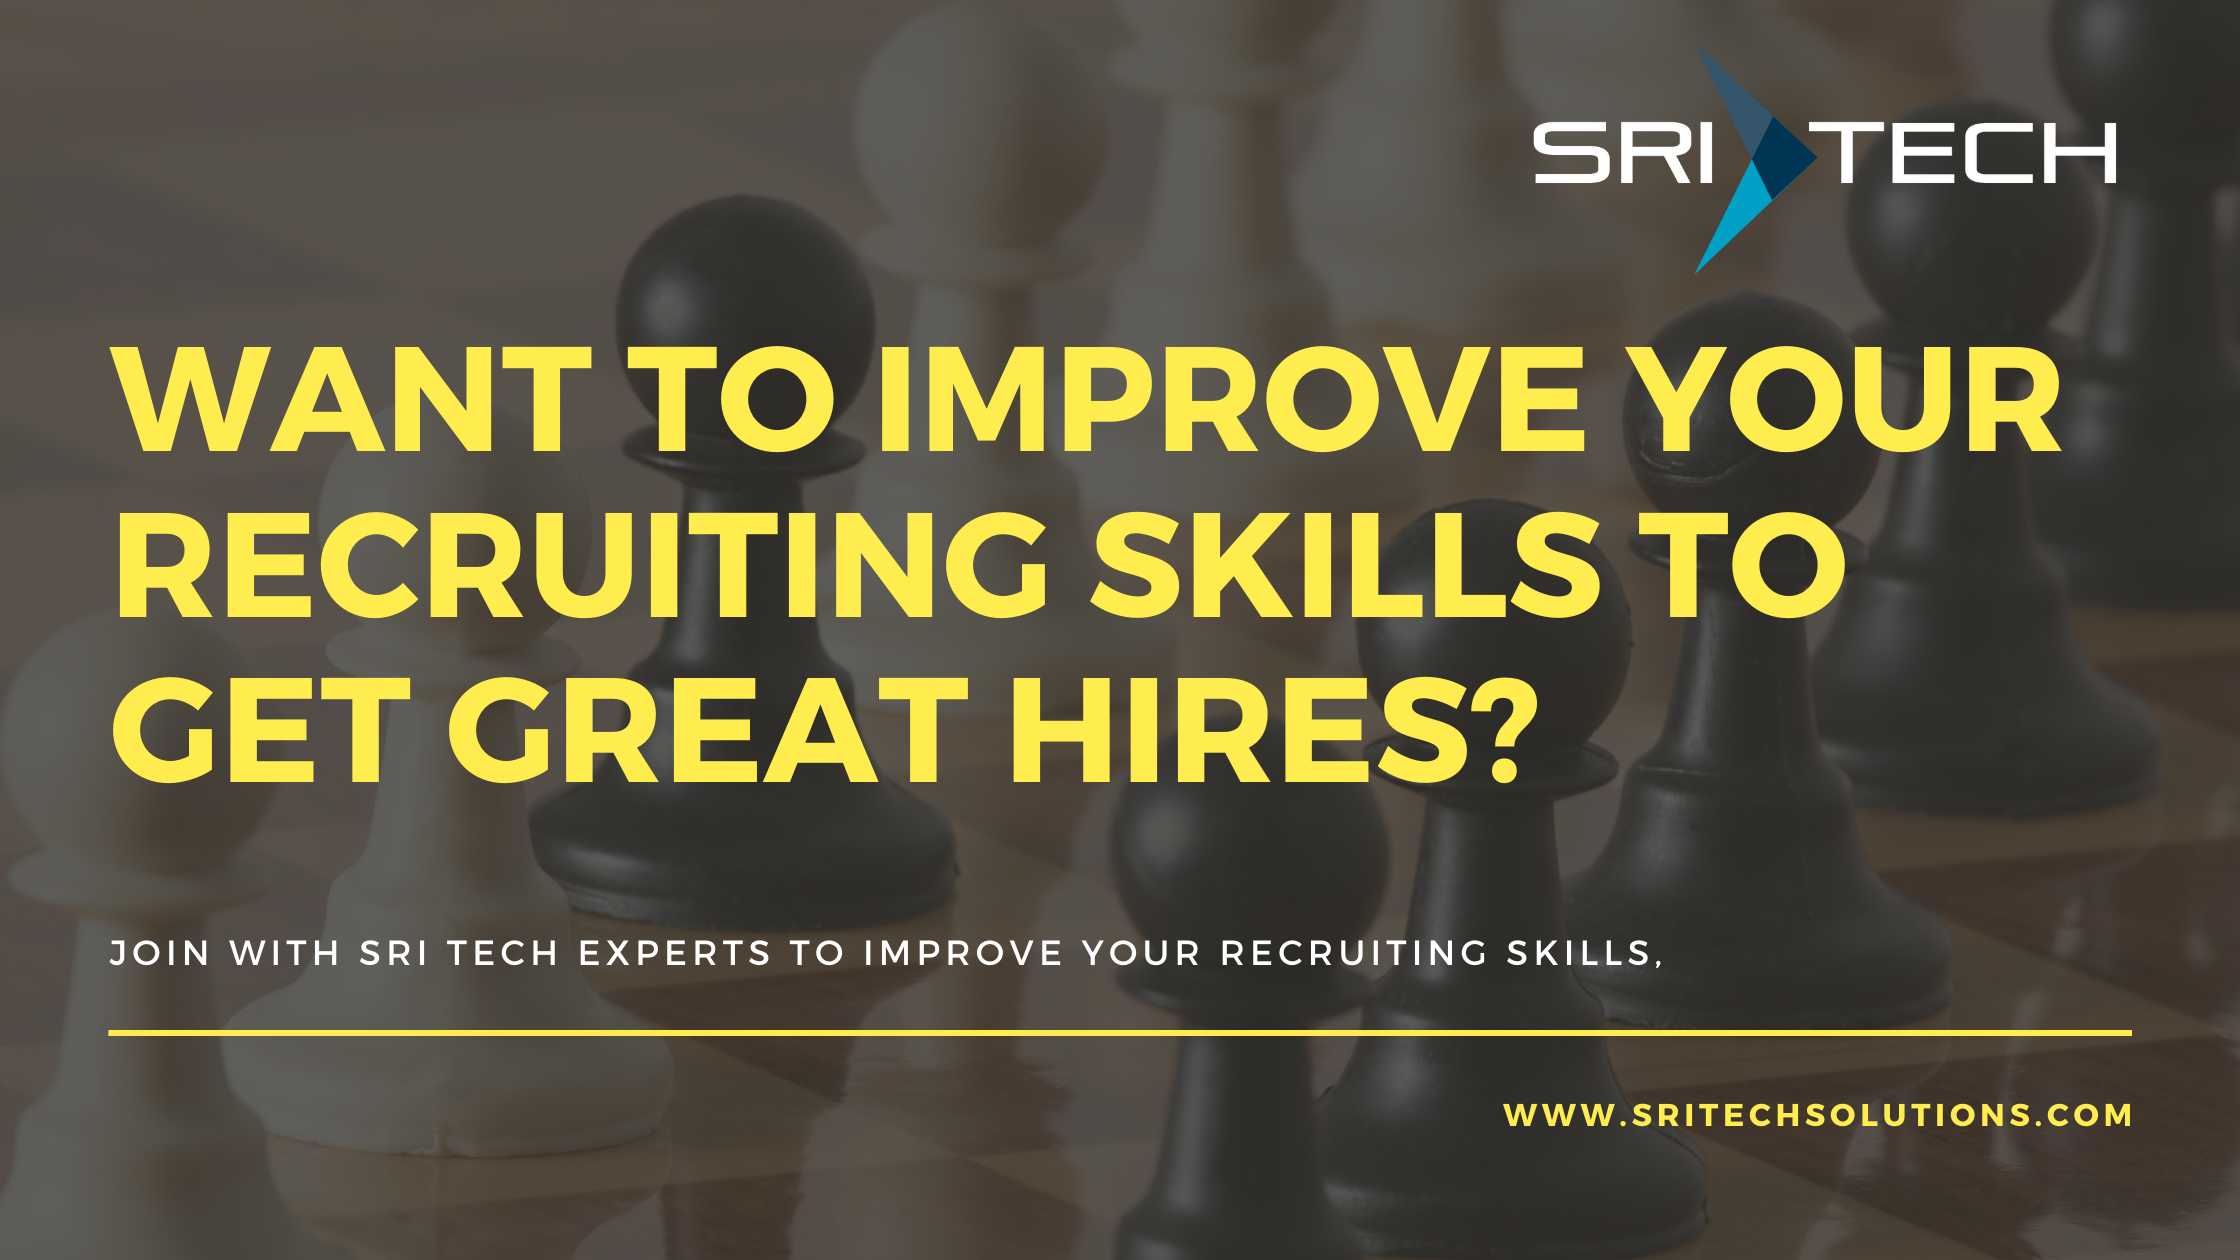 Want to Improve your Recruiting Skills?